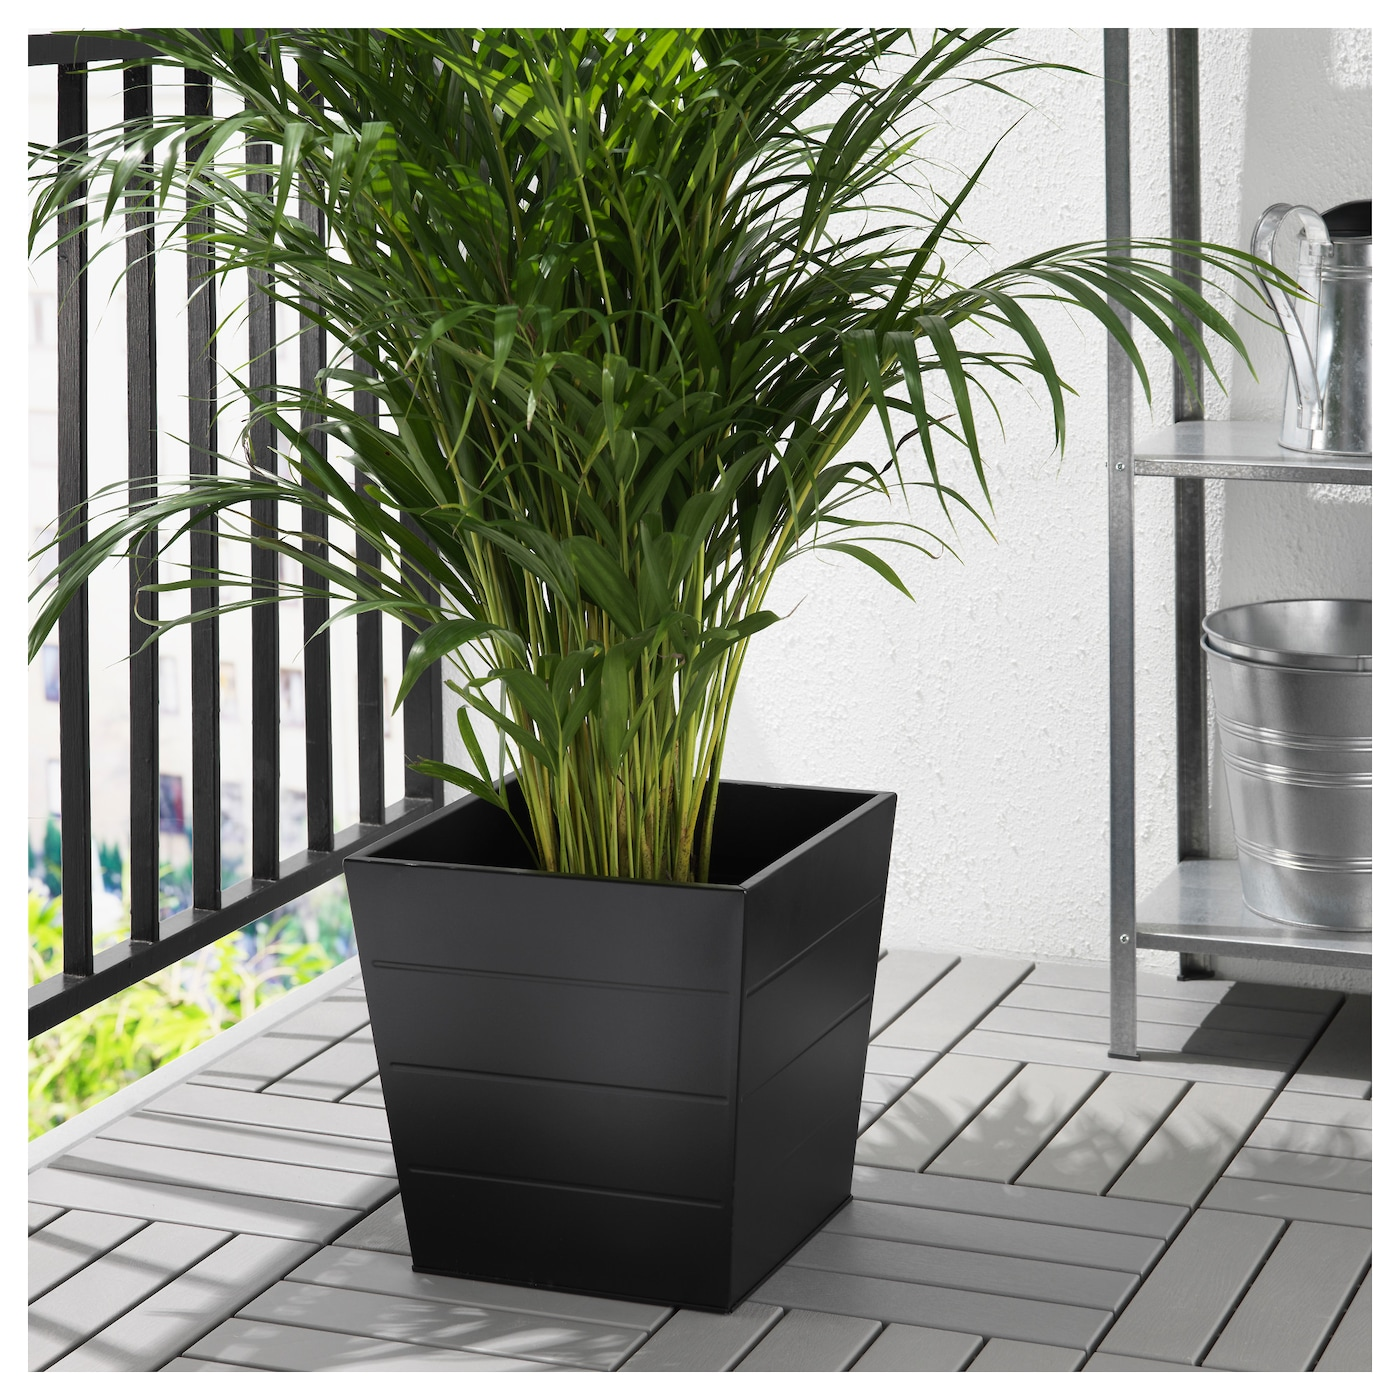 Gr set plant pot outdoor black 30x30 cm ikea for Black planters ikea